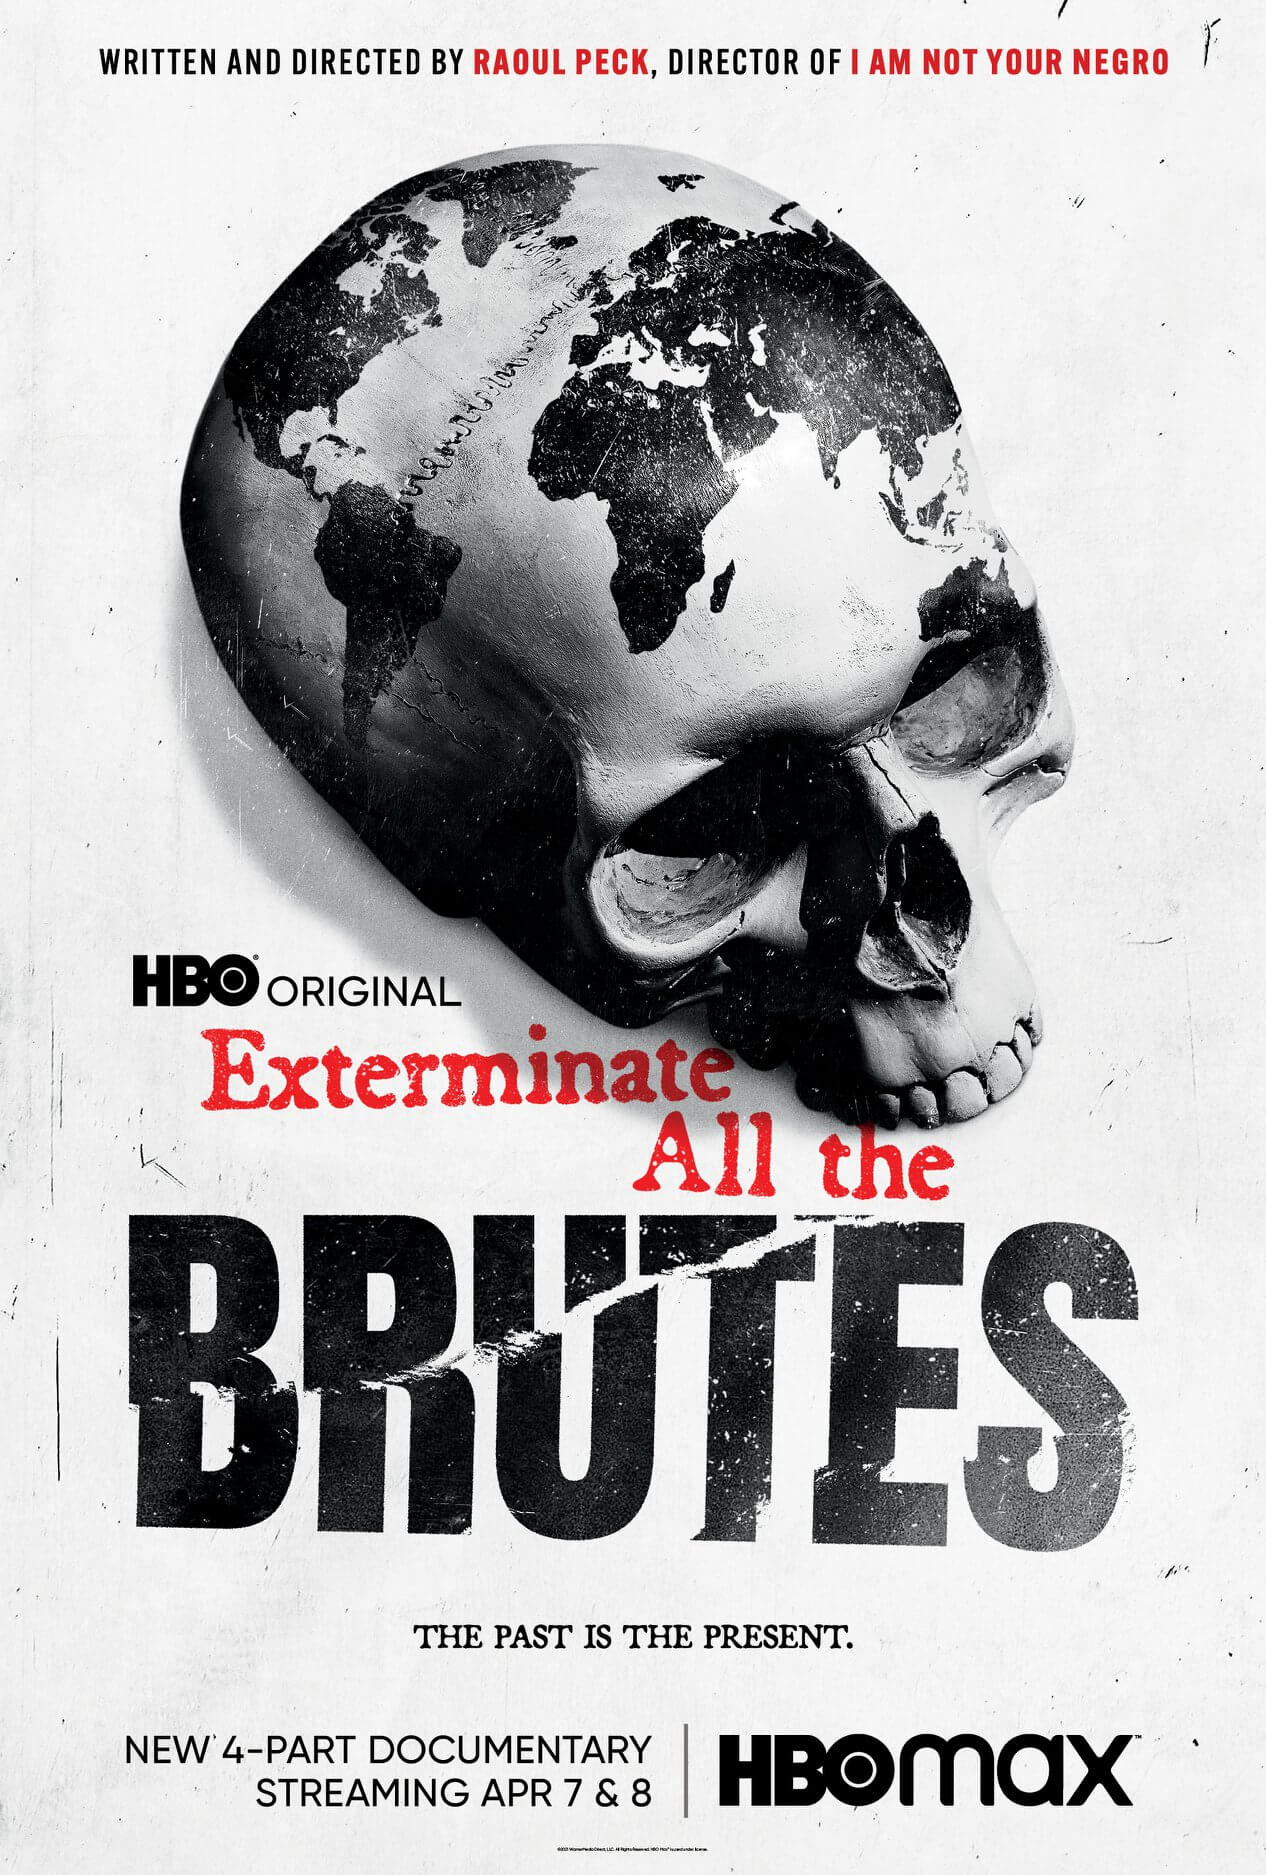 Exterminate All The Brutes Parts 1 and 2